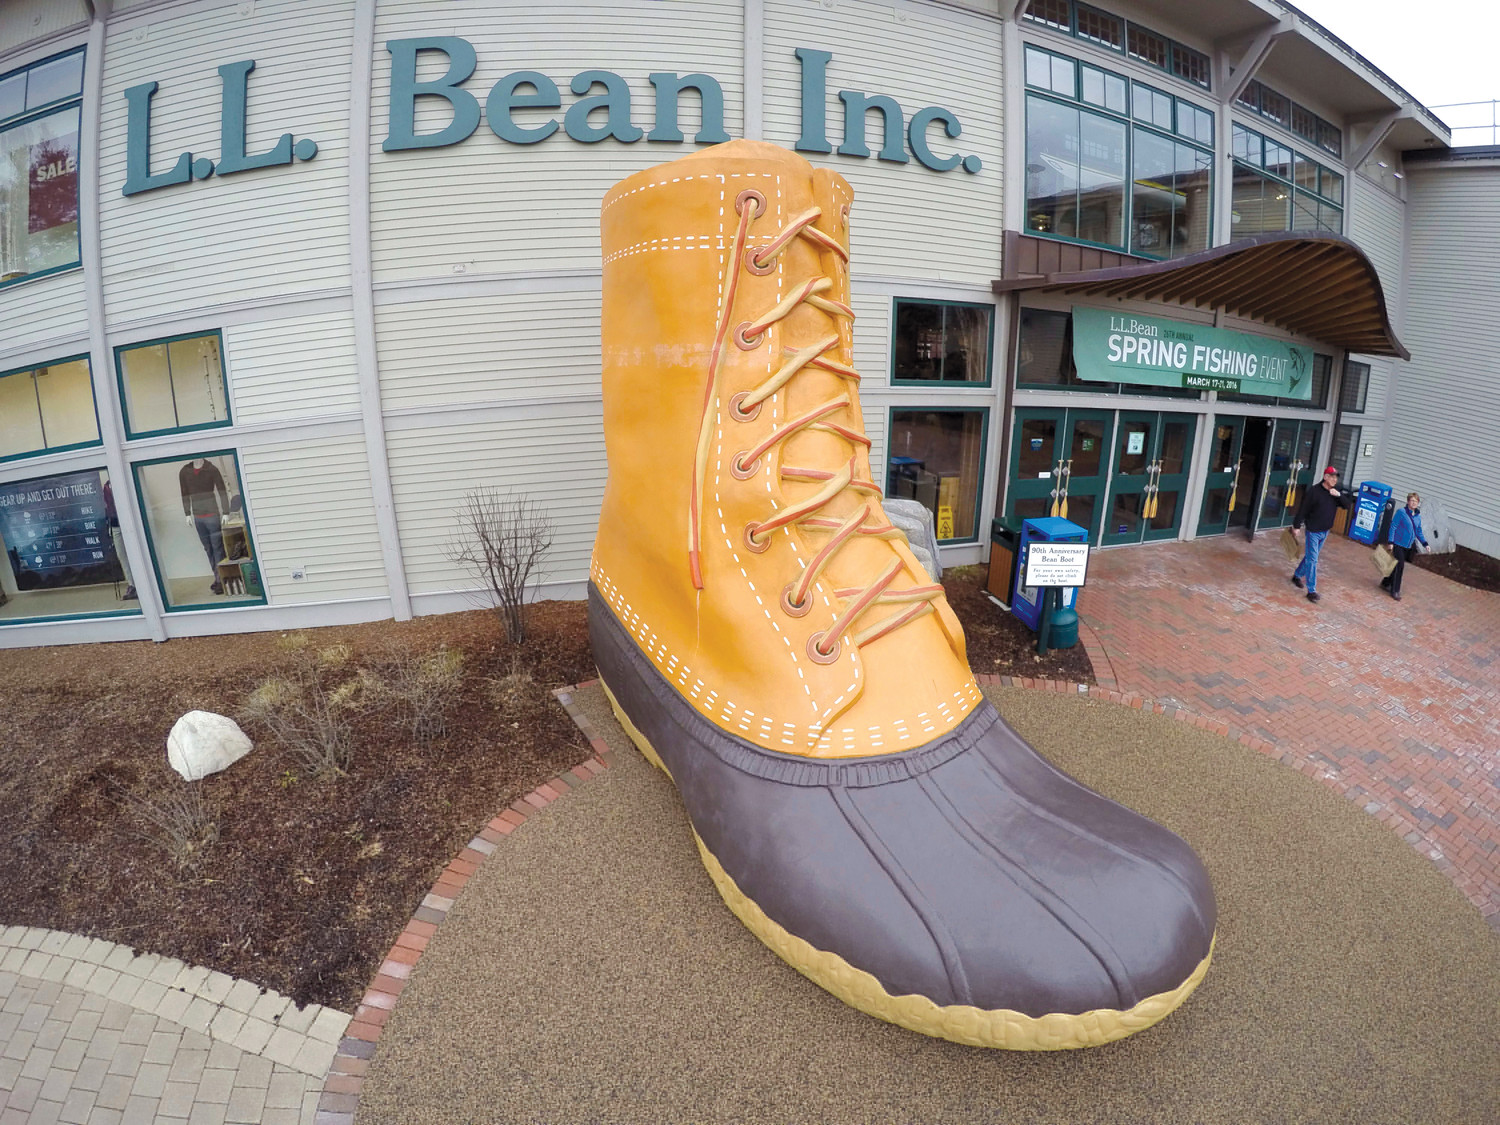 AP FILE PHOTOShoppers exit the L.L. Bean retail store in Freeport, Maine, in 2016. L.L. Bean is tightening its generous return policy by imposing a one-year limit on most returns to reduce abuse and fraud.